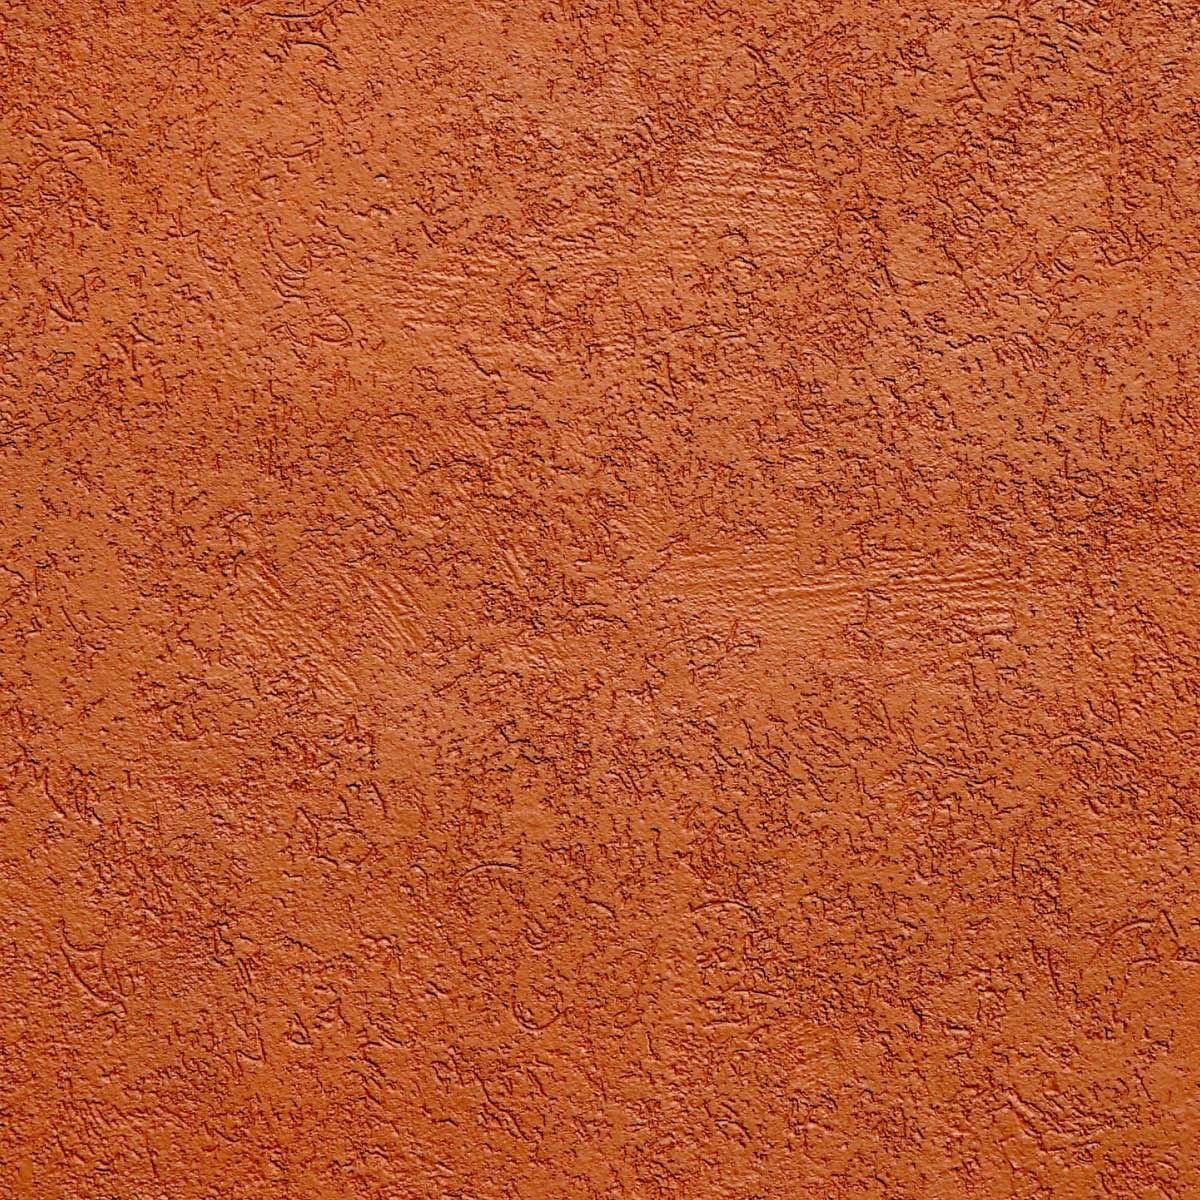 Rust Colored Textured Stucco Wall